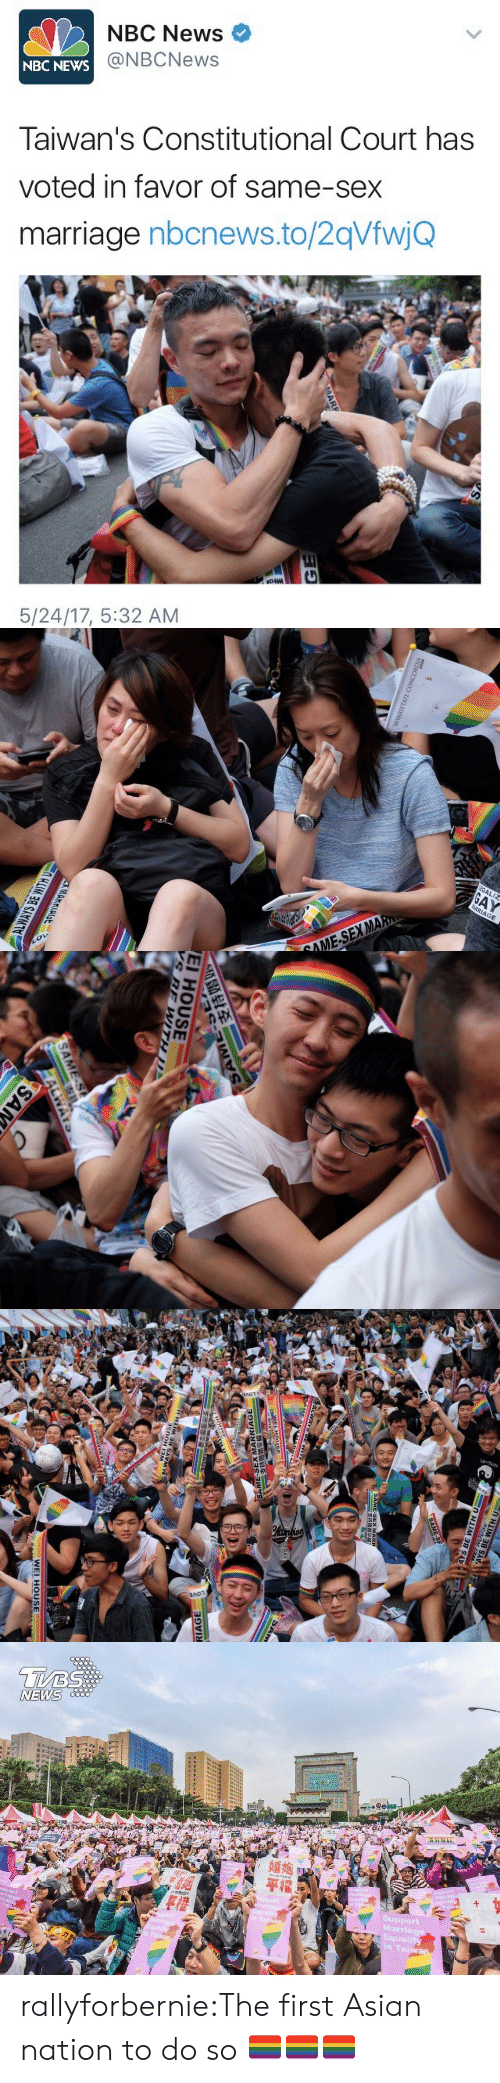 In Favor: NBC News  @NBCNews  NBC  NEWS  Taiwan's Constitutional Court has  voted in favor of same-sex  marriage nbcnews.to/2qVfwjQ  5/24/17, 5:32 AM   EGALIZ  RRIAGE  MA  OME-SEX   EI HOUSE   NEWS  平權  Marriage  Equality  Tai rallyforbernie:The first Asian nation to do so 🏳️‍🌈🏳️‍🌈🏳️‍🌈